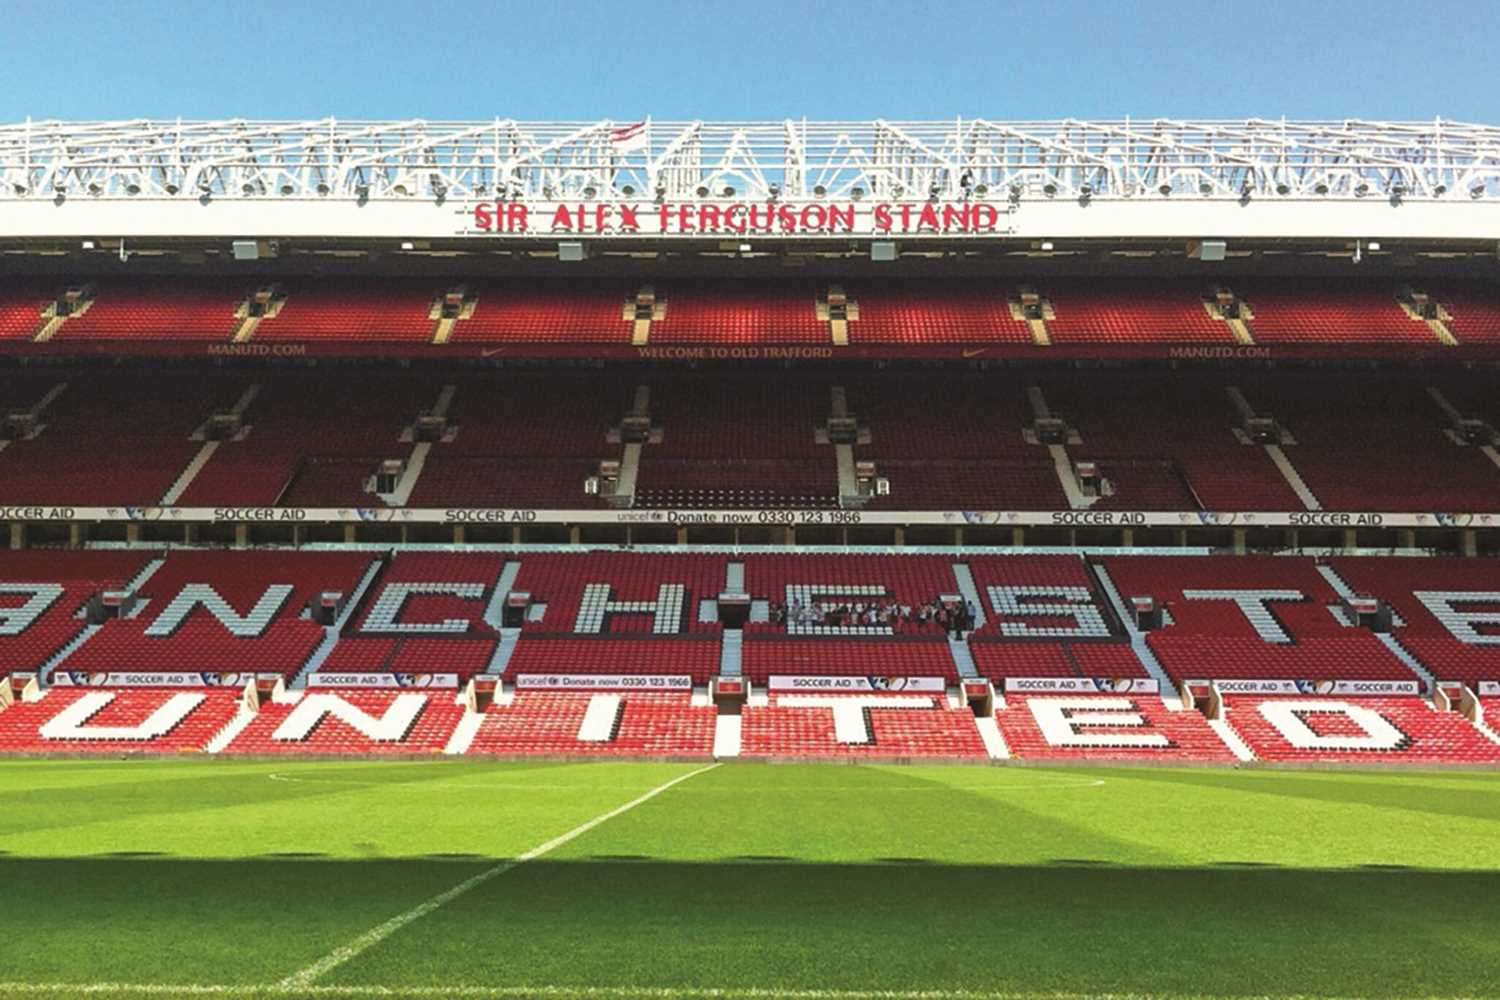 Manchester United VIP Hospitality for 2 with Overnight 5* Hotel 2021/22 Season A VIP Hospitality